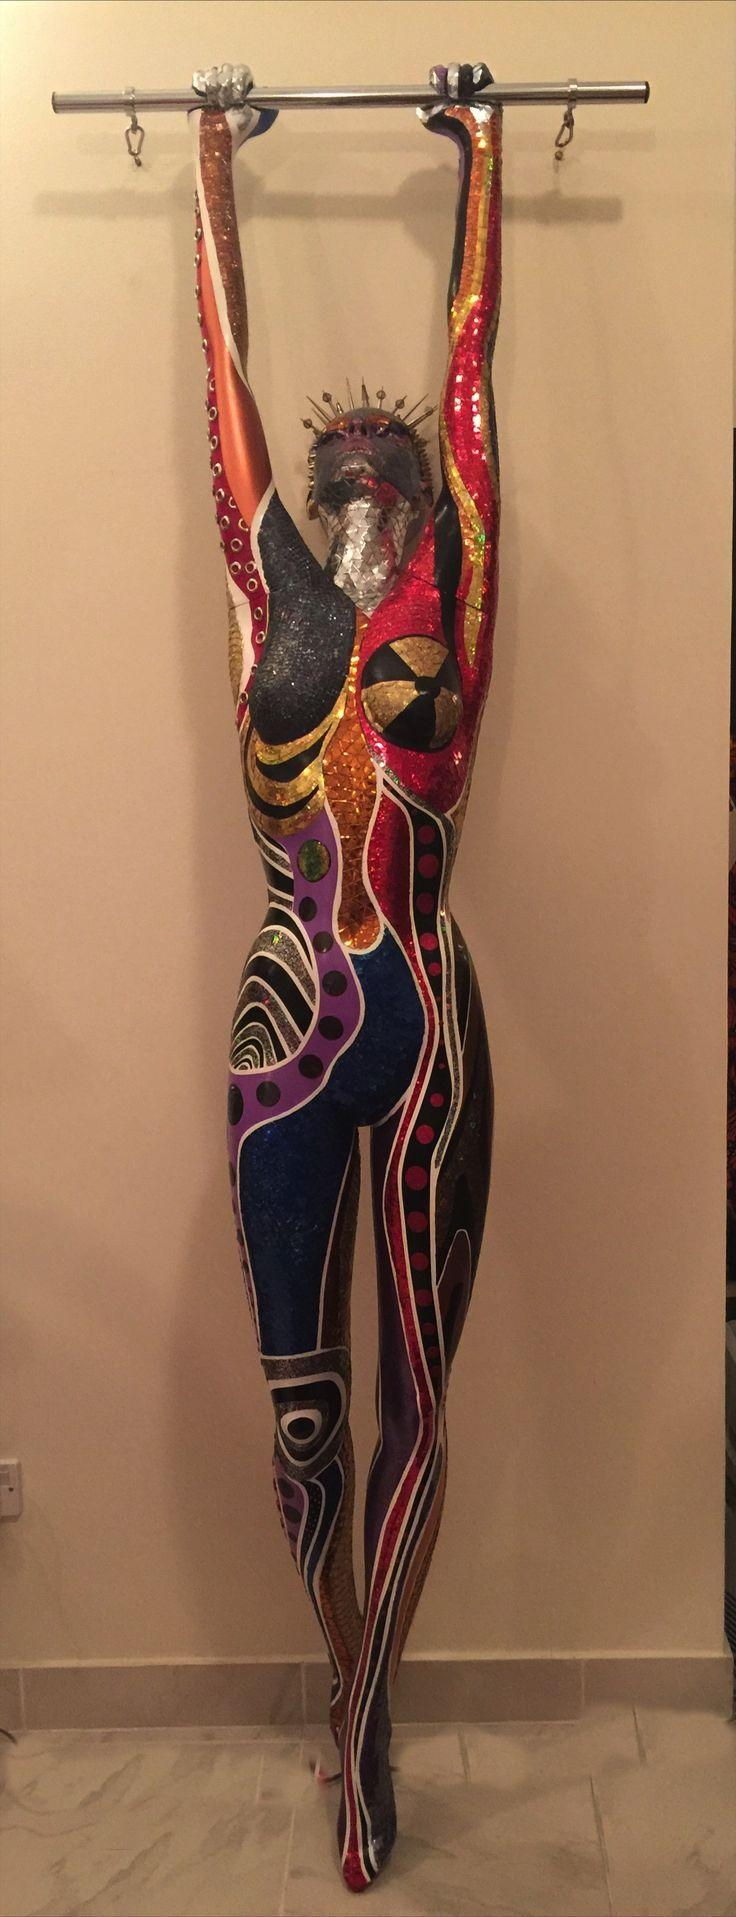 30 Best Craft Show Booth W/mannequins Images On Pinterest intended for Mannequin Wall Art